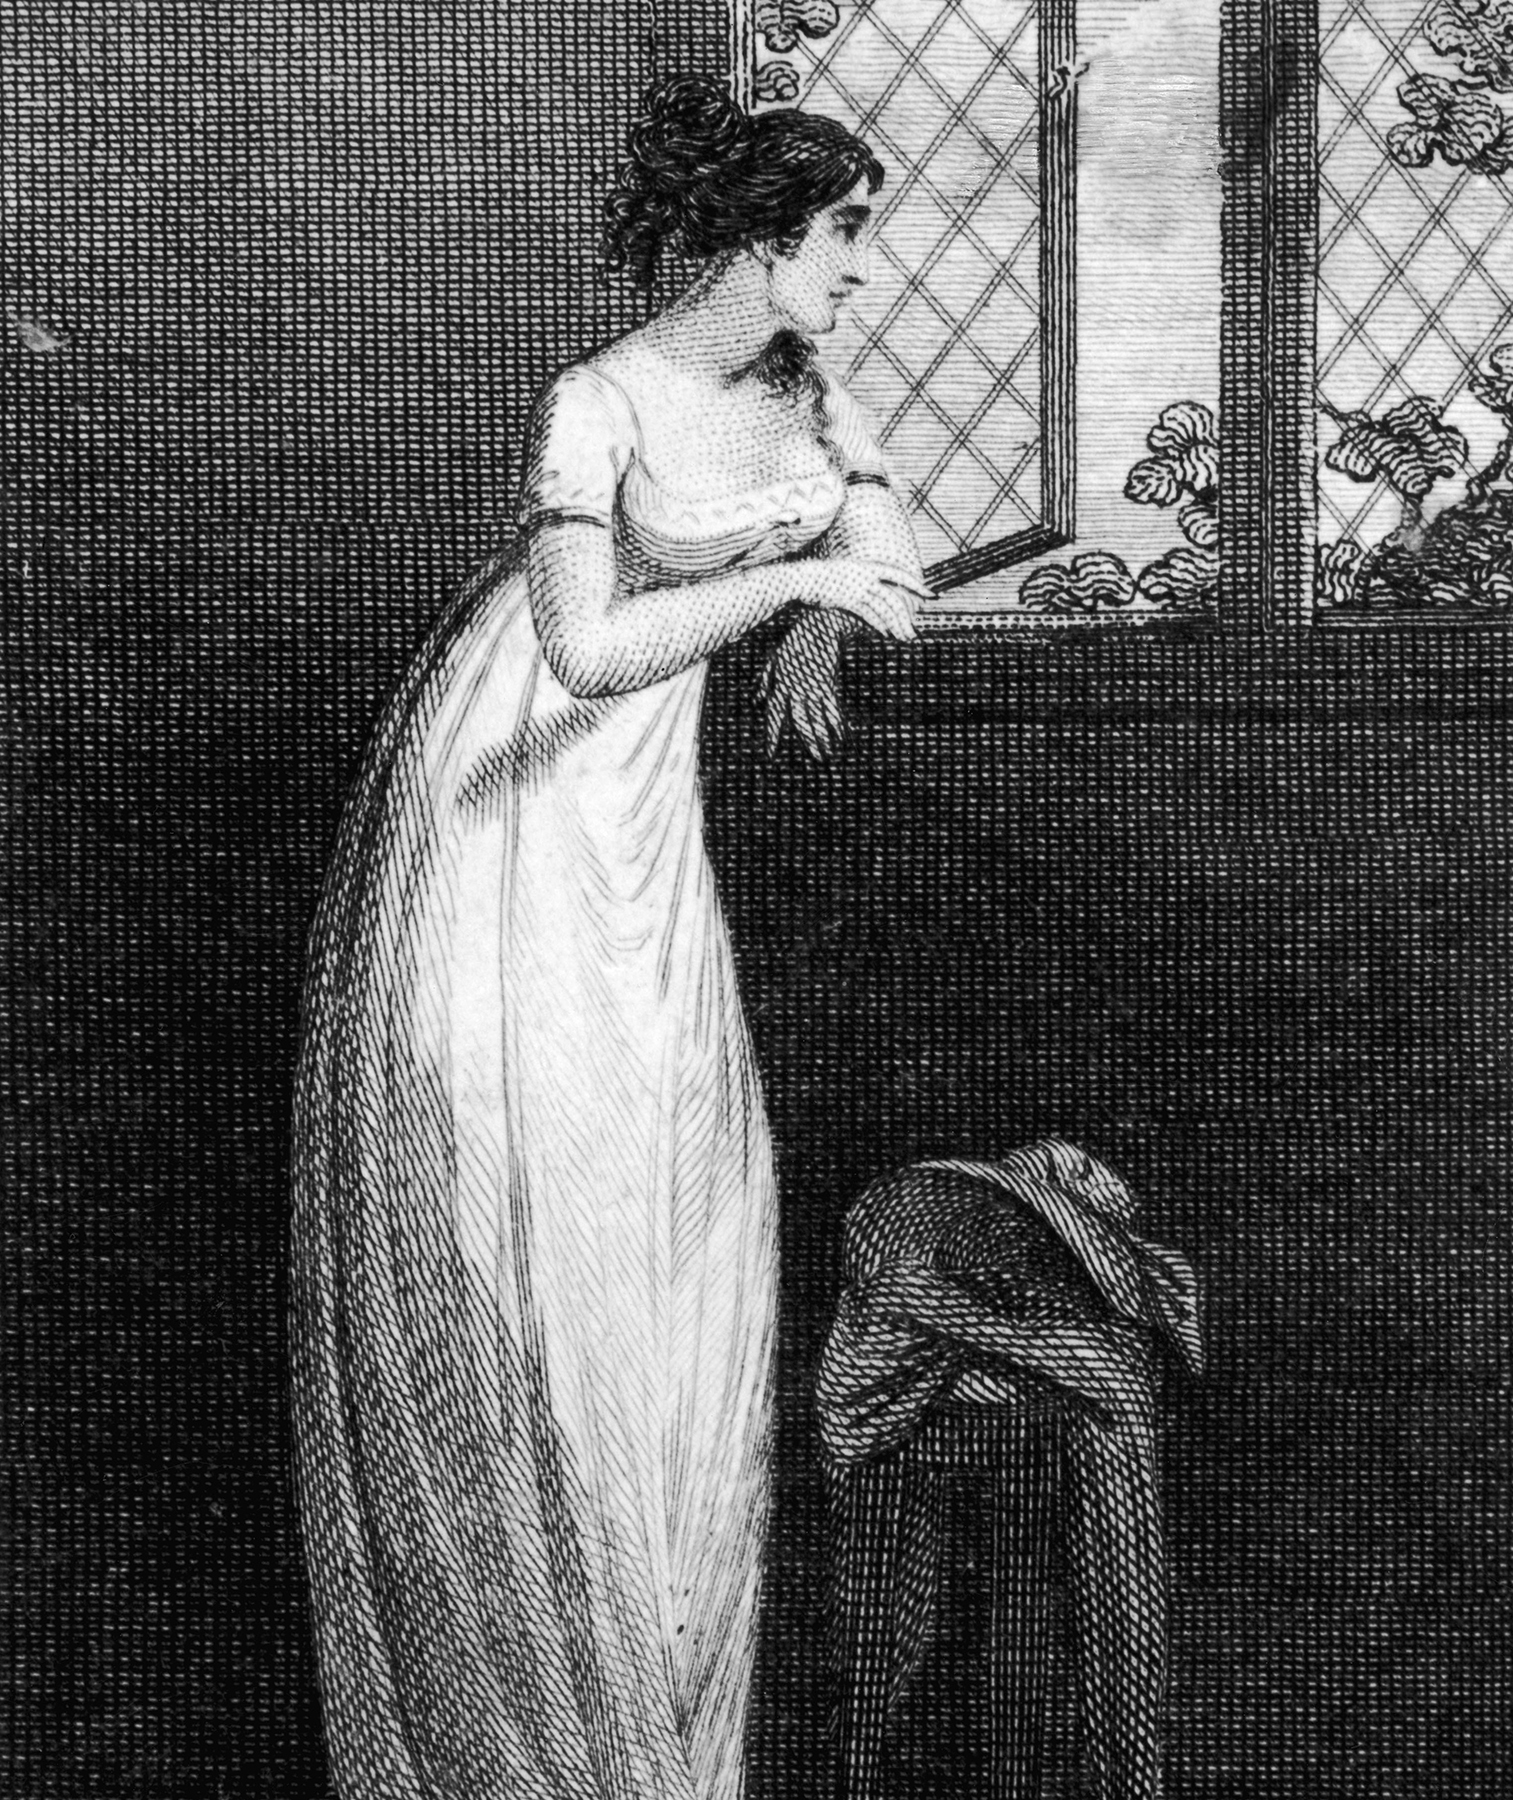 Drawing of woman in 1808